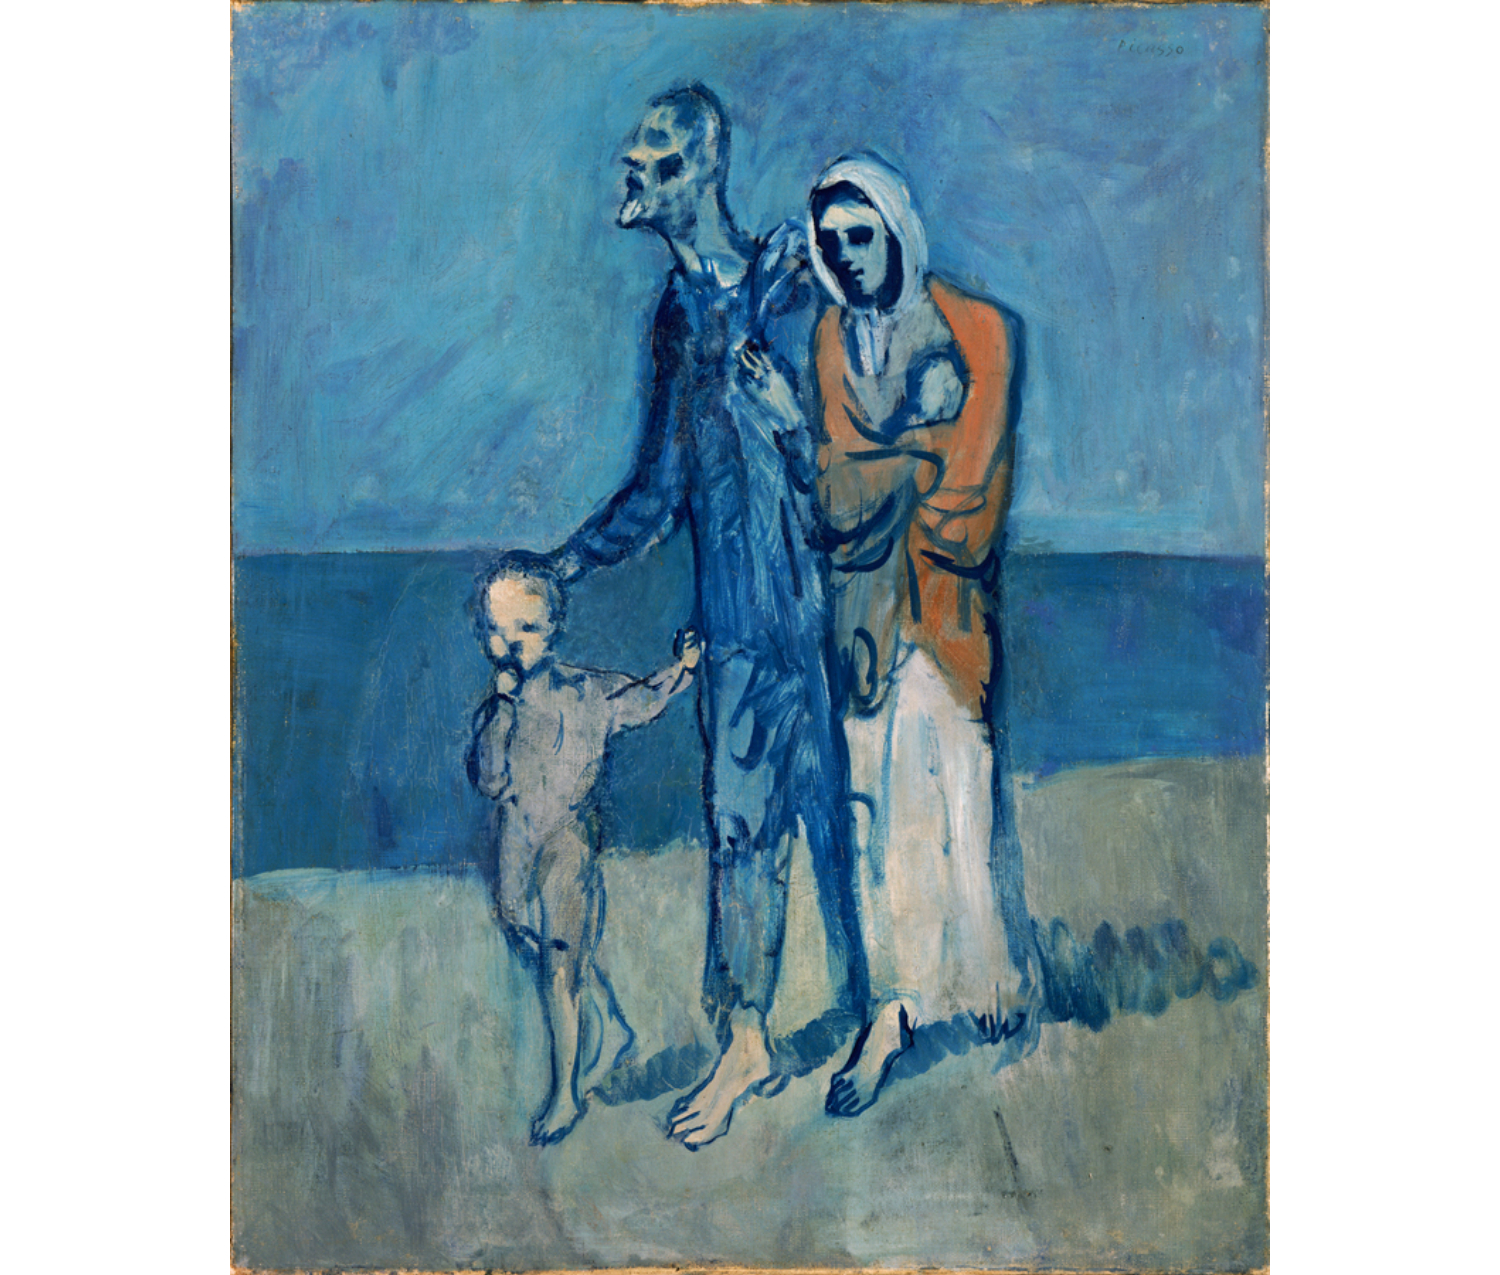 A child, man, and woman walk by the sea. On a background of blues they look forlorn. Their expressions are abstracted and their bodies skeletal.